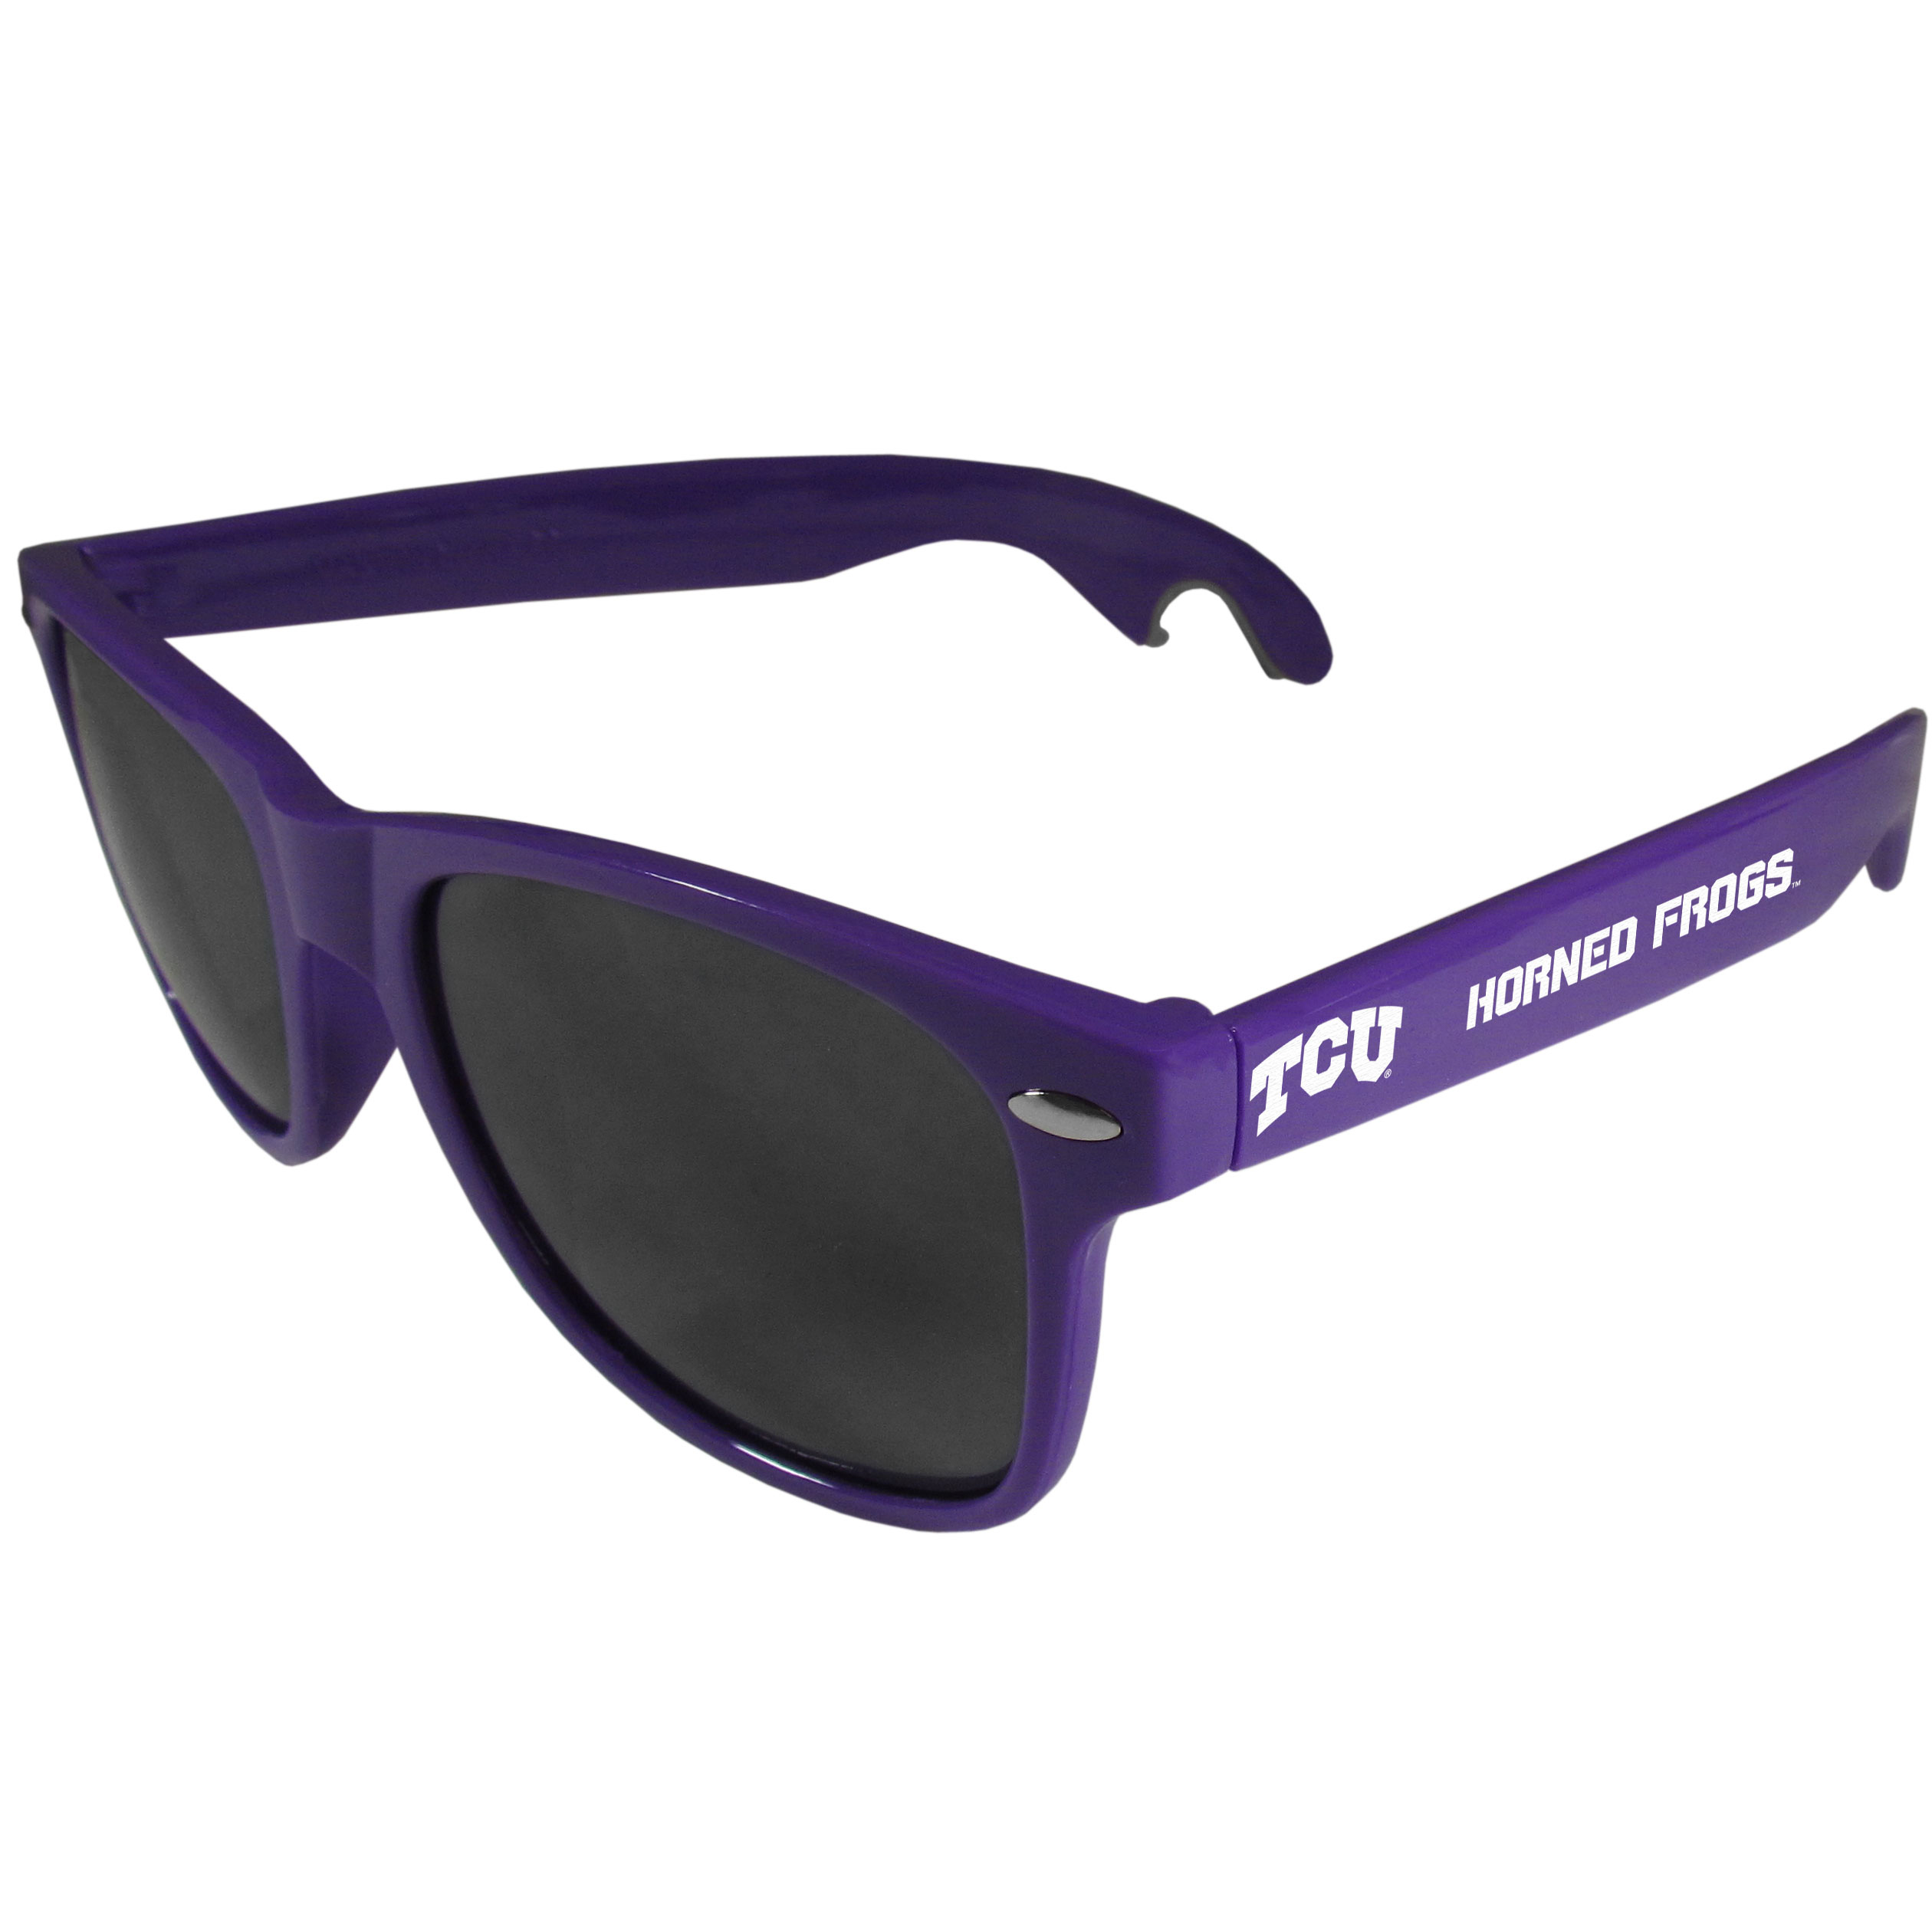 TCU Horned Frogs Beachfarer Bottle Opener Sunglasses, Purple - Seriously, these sunglasses open bottles! Keep the party going with these amazing TCU Horned Frogs bottle opener sunglasses. The stylish retro frames feature team designs on the arms and functional bottle openers on the end of the arms. Whether you are at the beach or having a backyard BBQ on game day, these shades will keep your eyes protected with 100% UVA/UVB protection and keep you hydrated with the handy bottle opener arms.